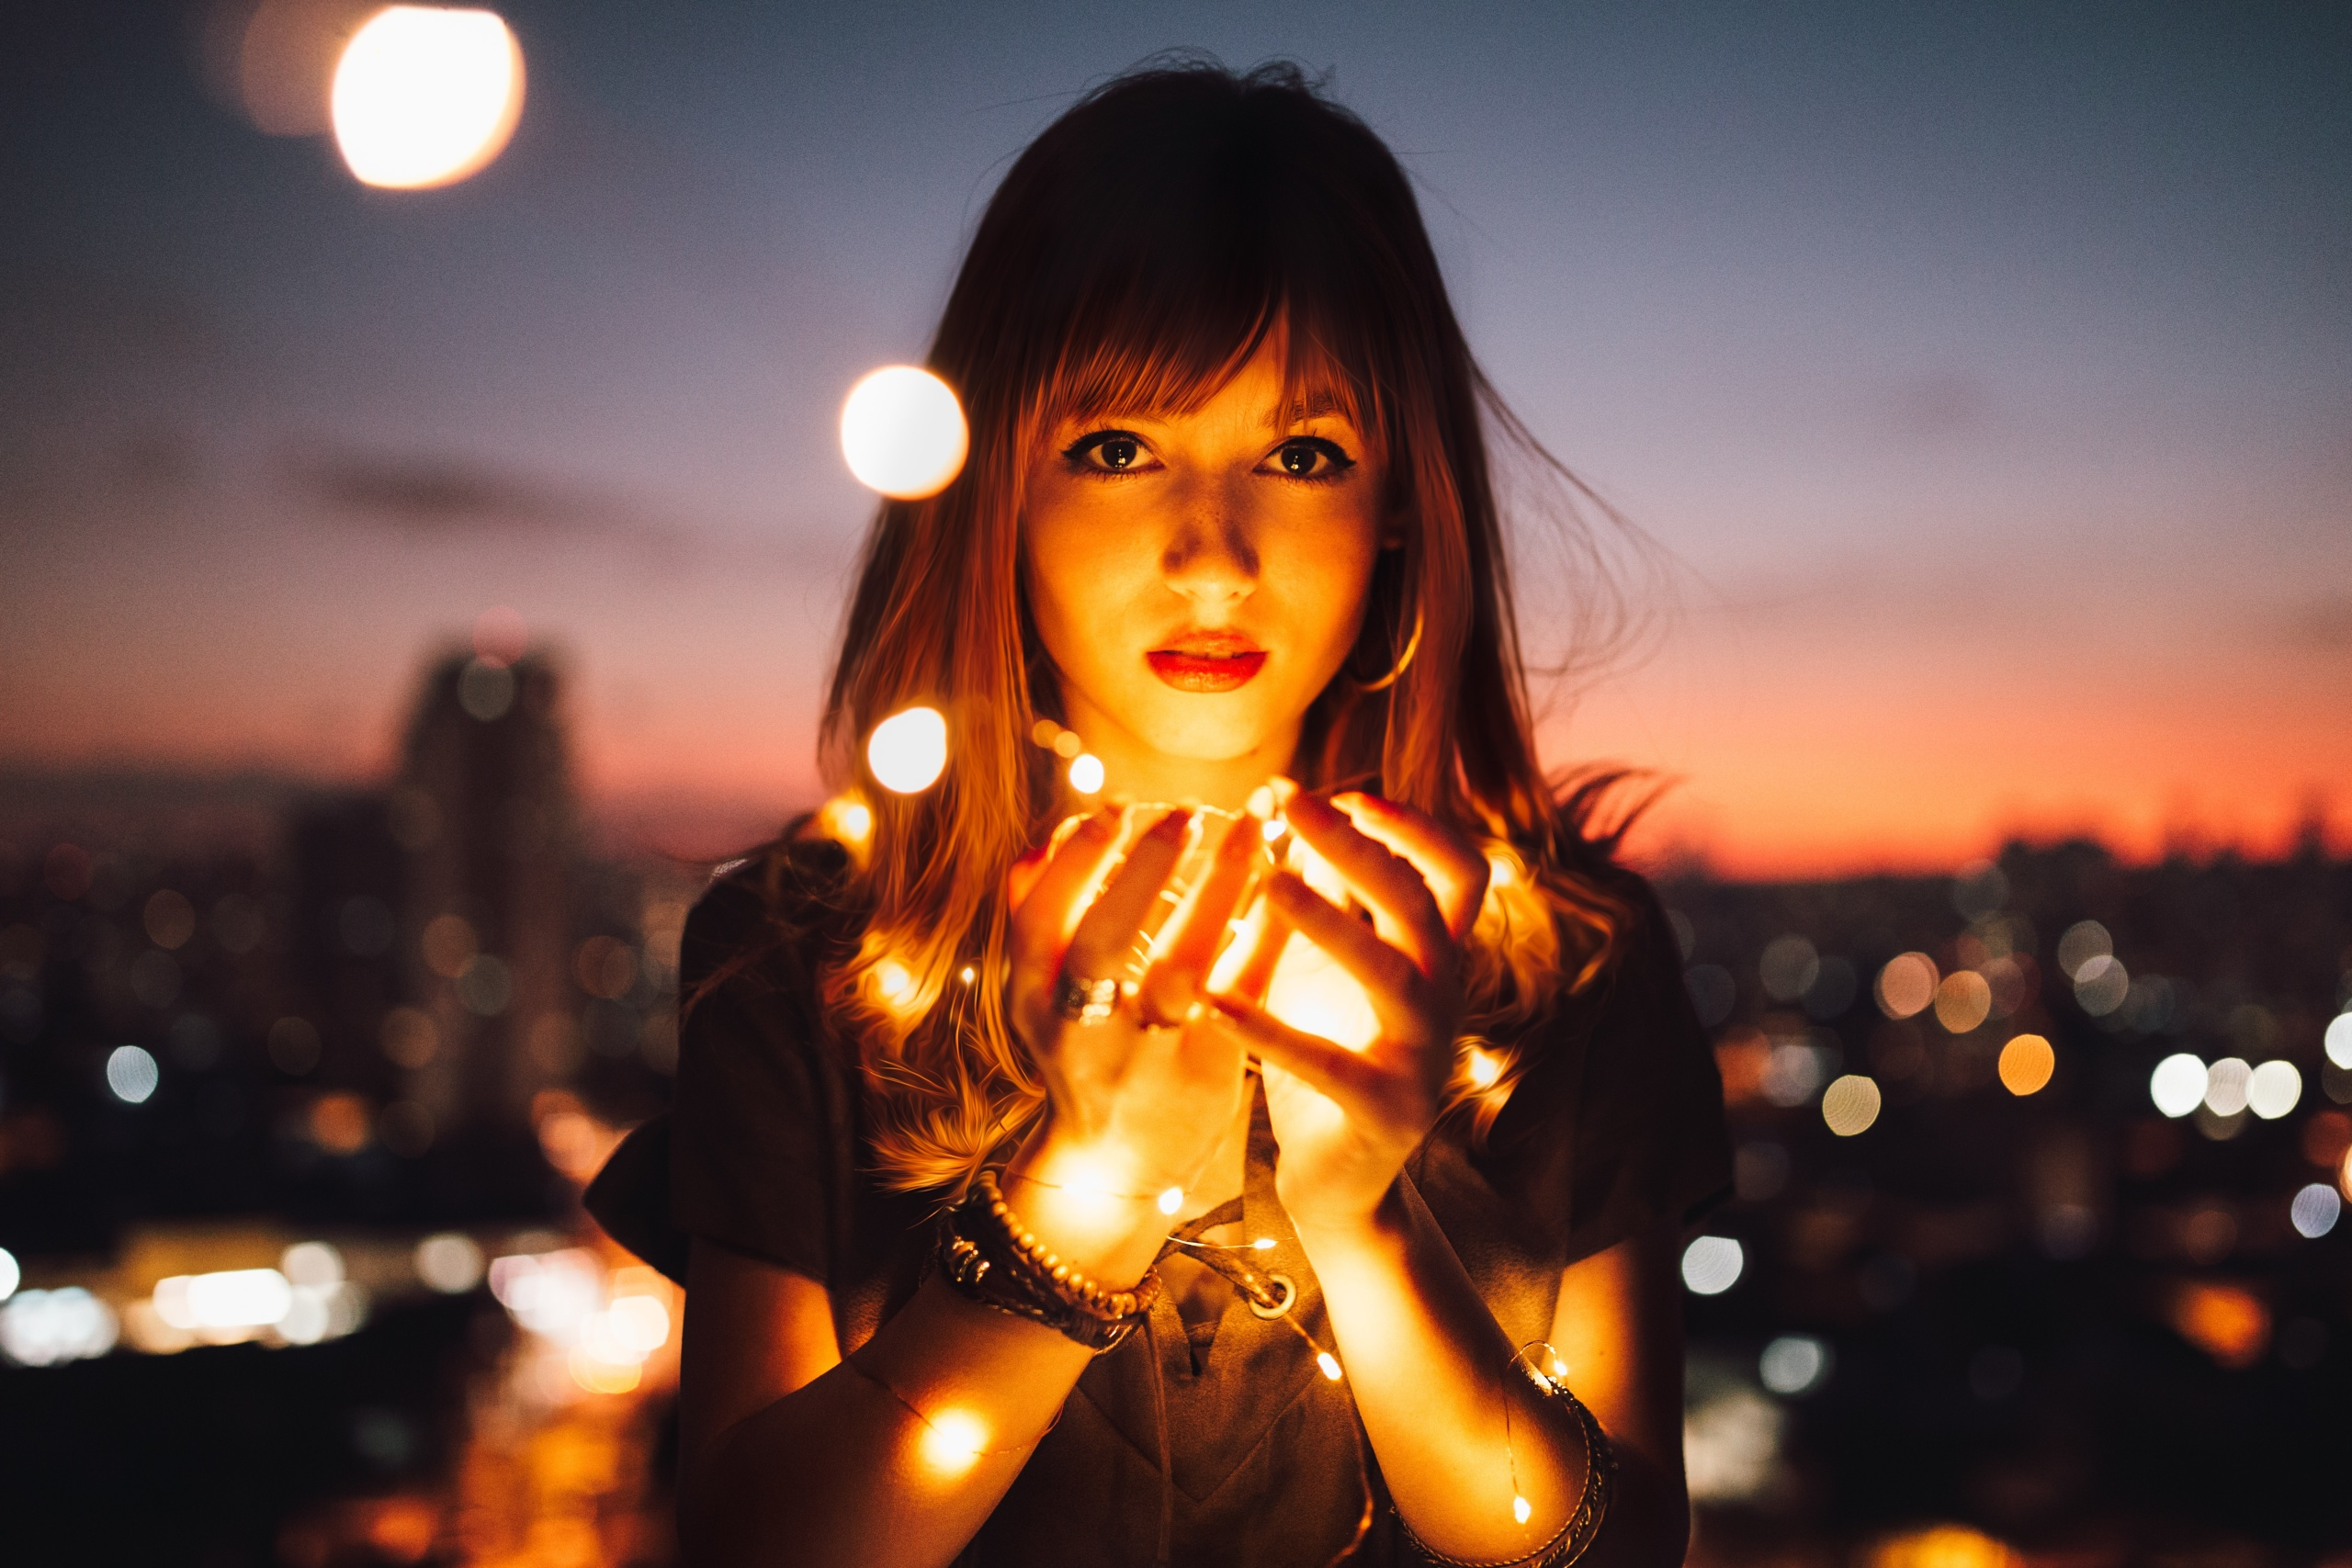 girl with light in the evening